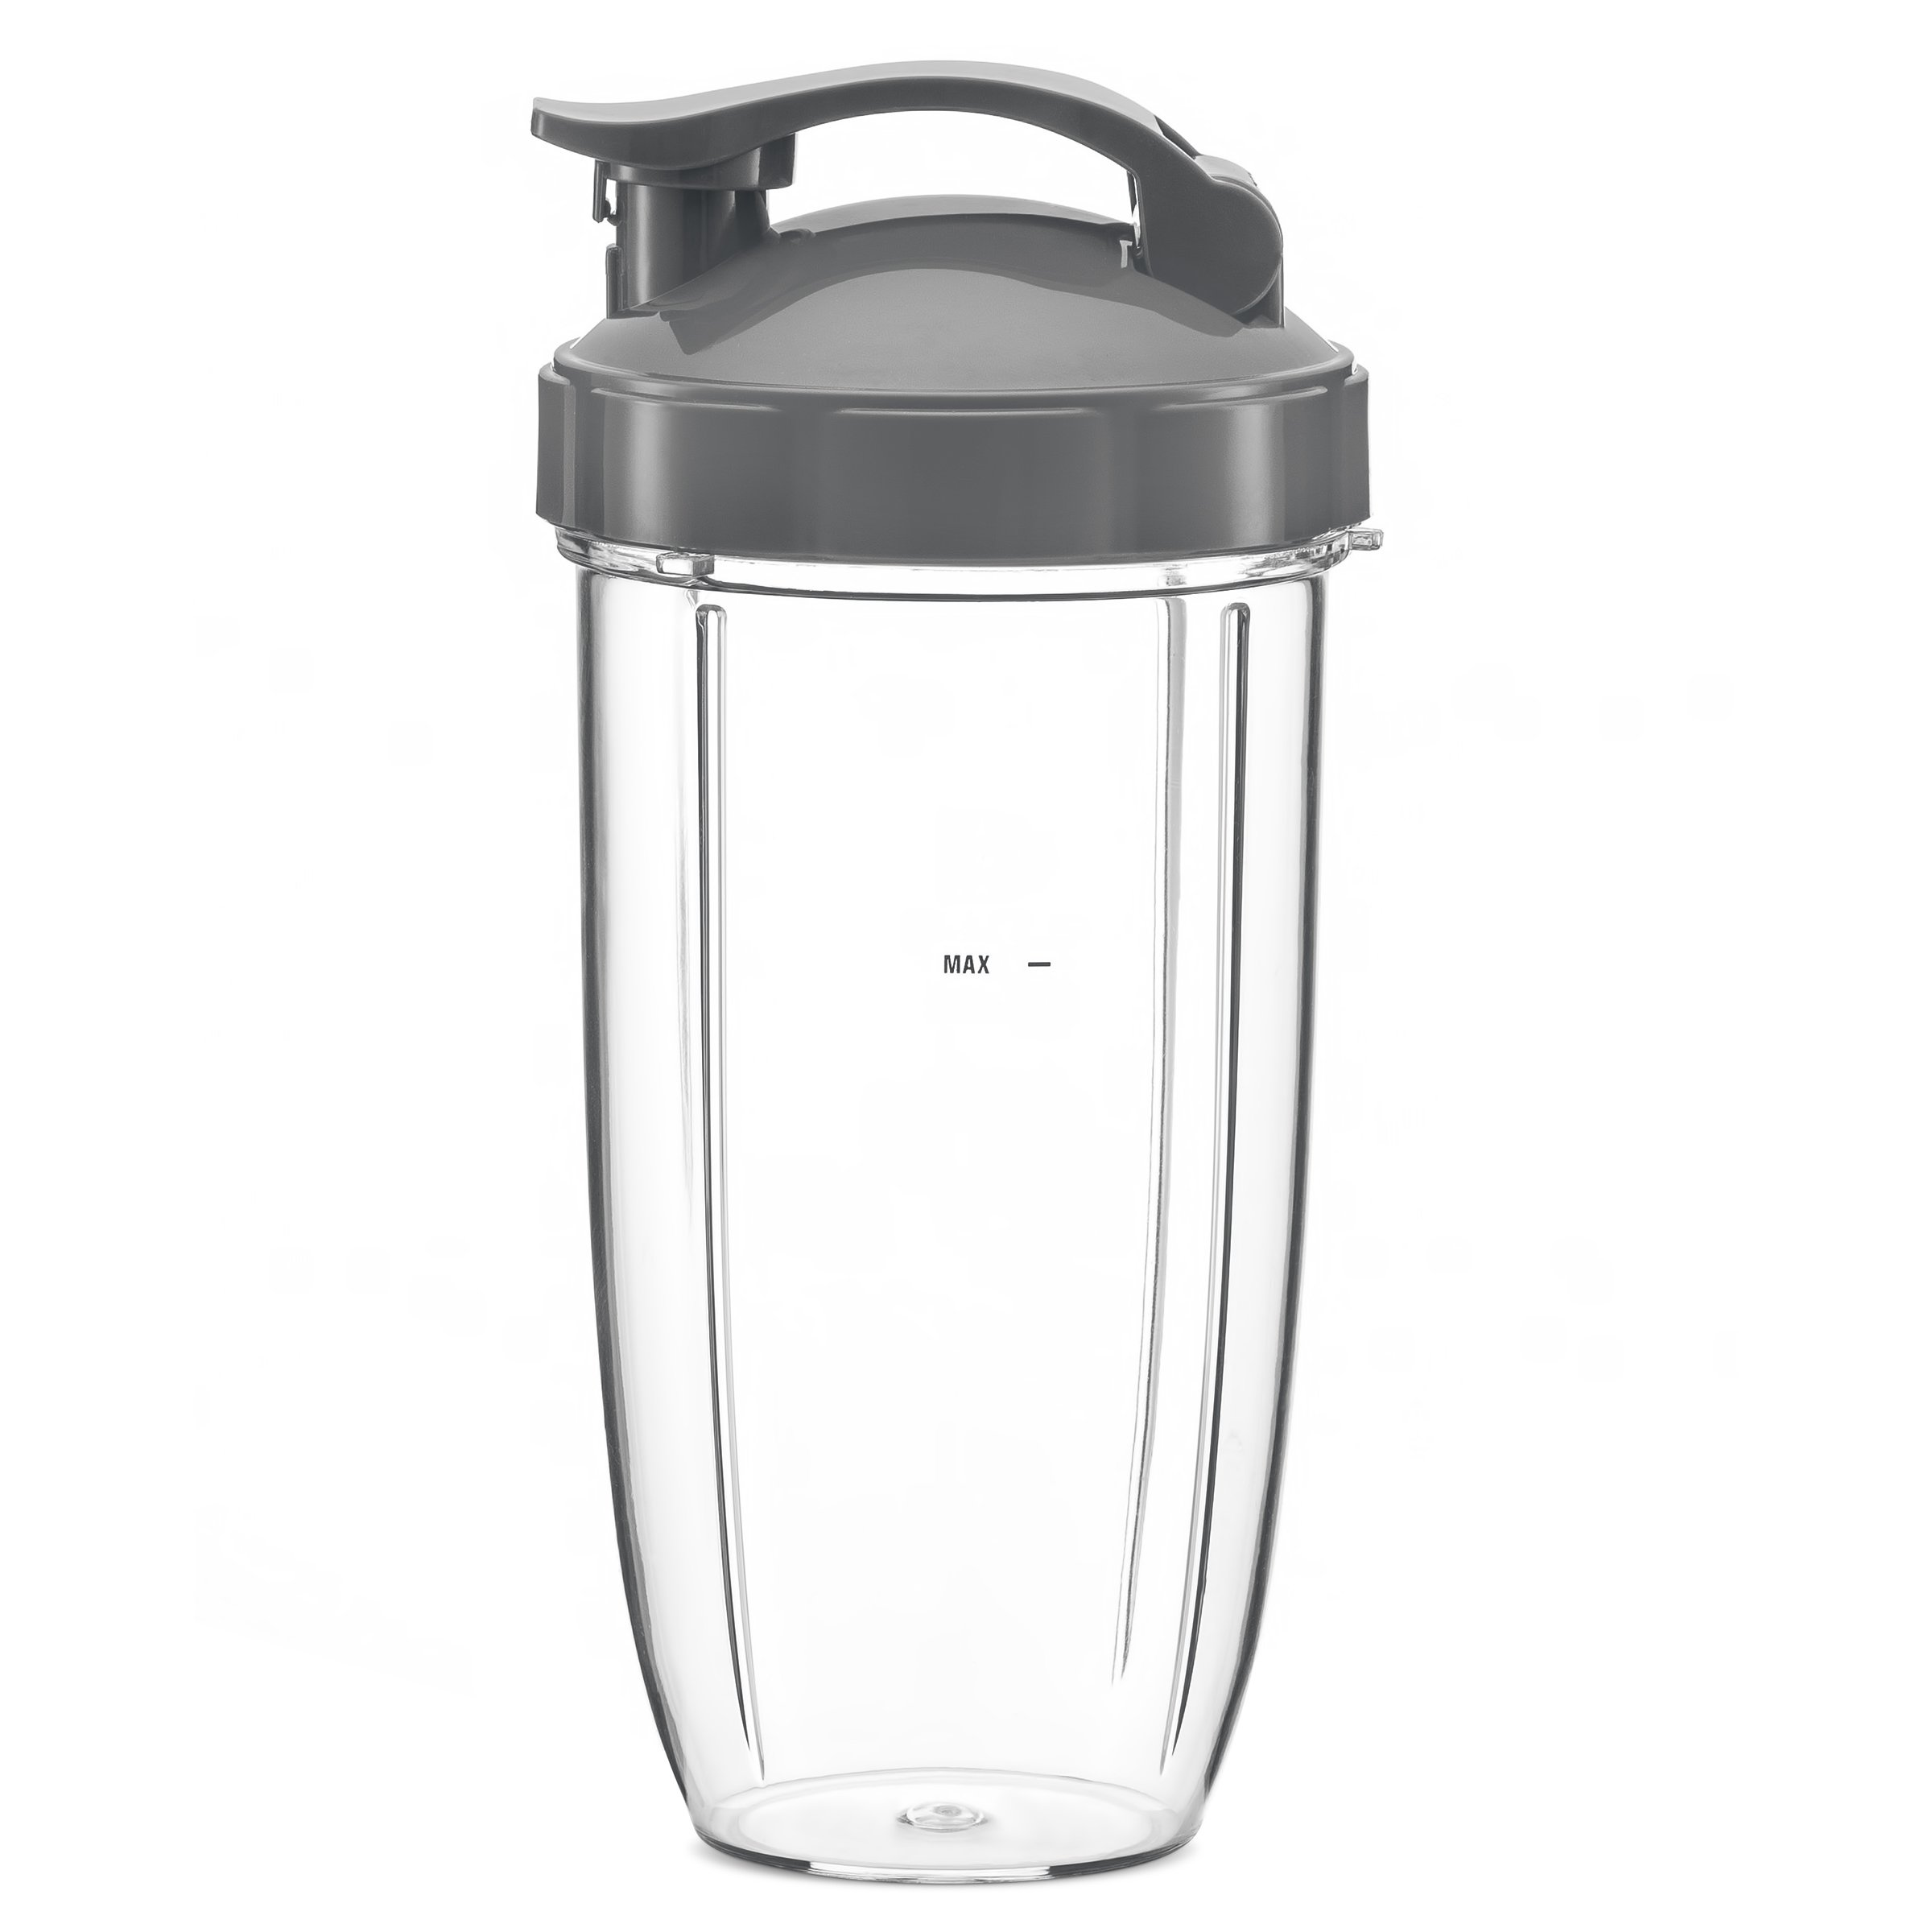 Preferred Parts Huge Replacement Cups for NutriBullet High-Speed Blender/Mixer, 32oz NutriBullet Cup with Flip Top To-Go Lid